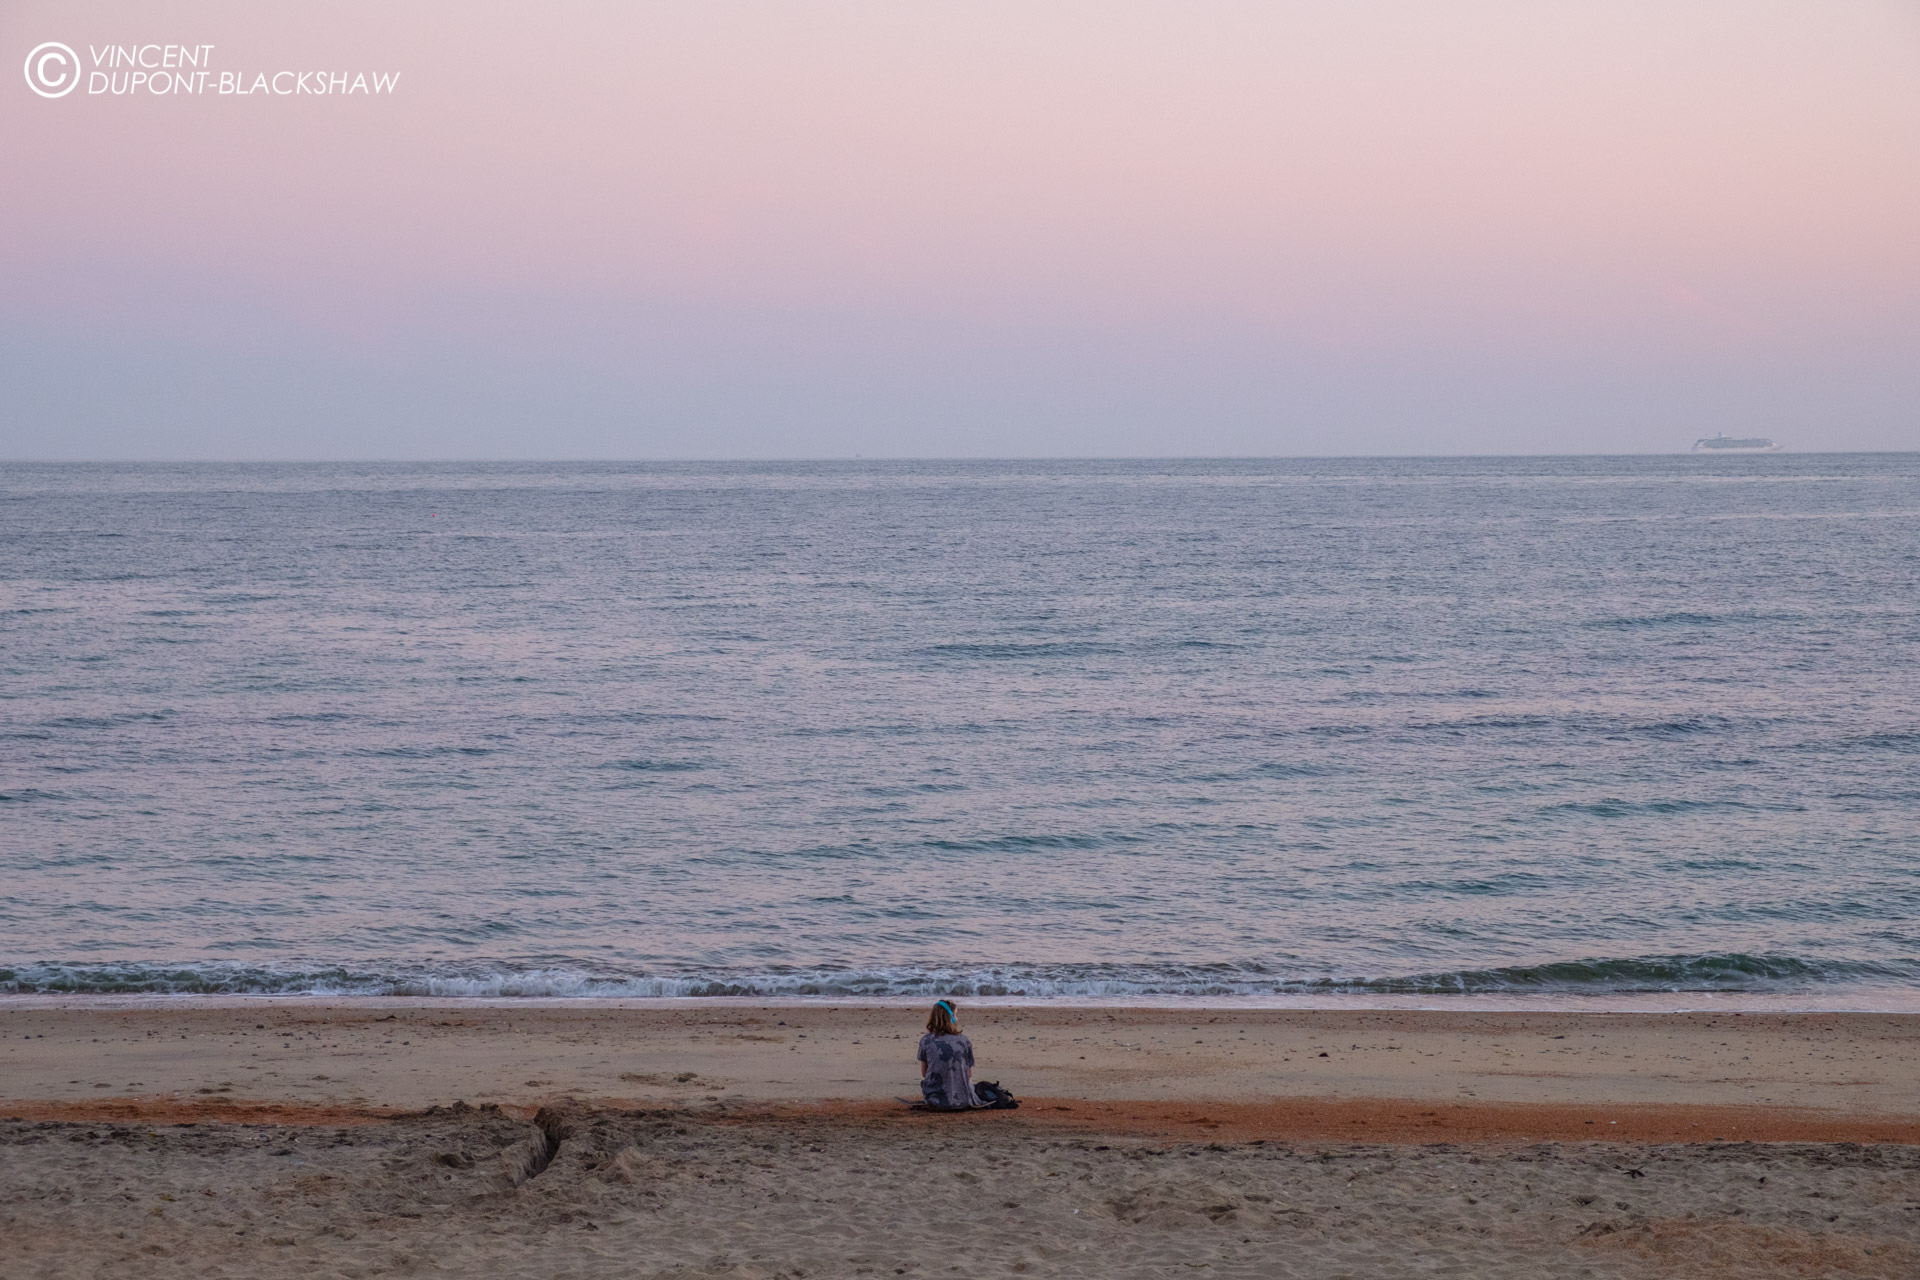 Grounded /// A men with headphones on the beach at dusk. (Ventnor)